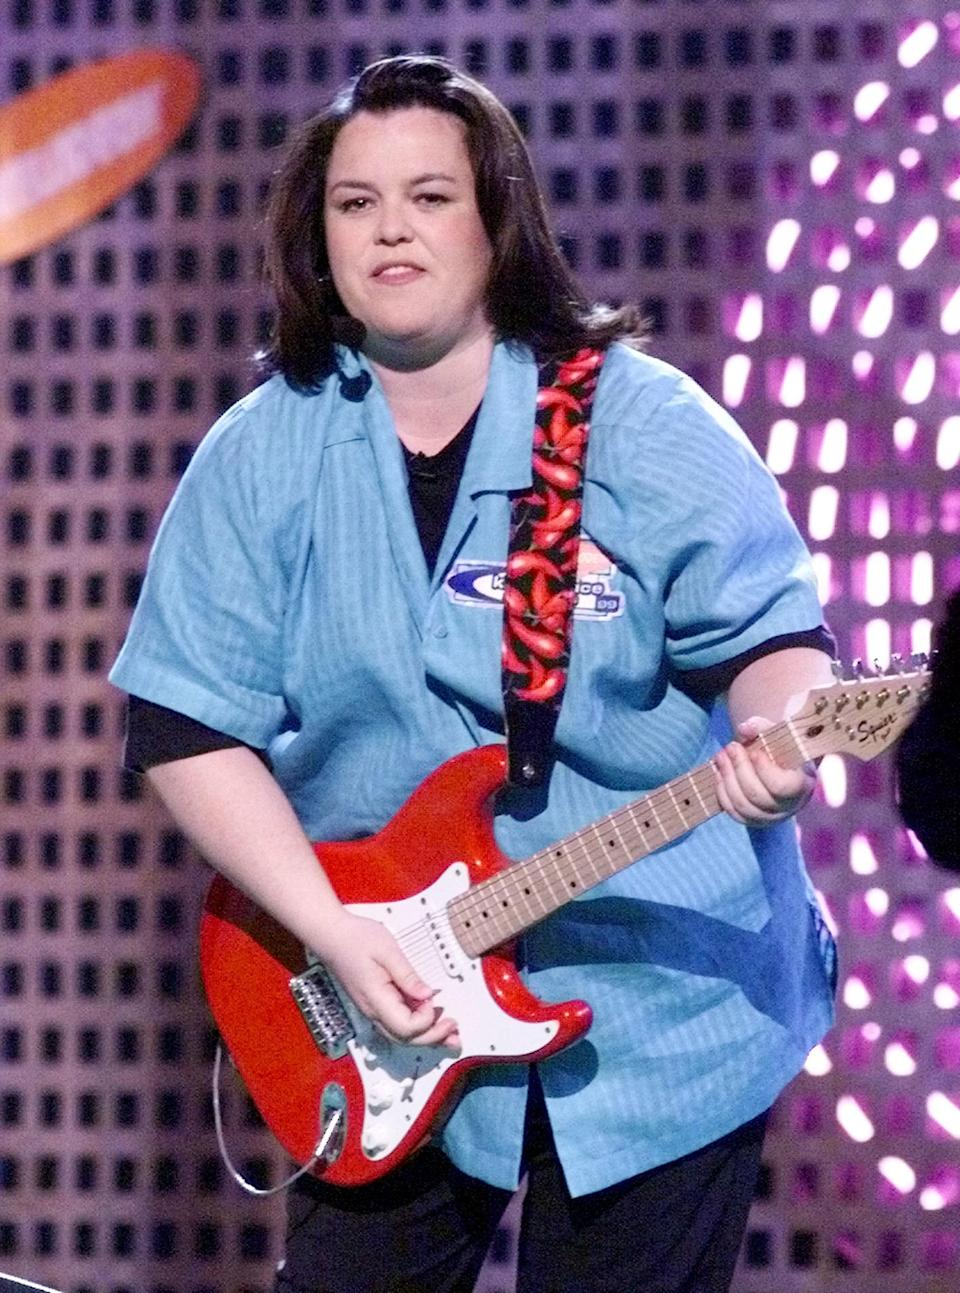 Rosie Odonnel with a guitar